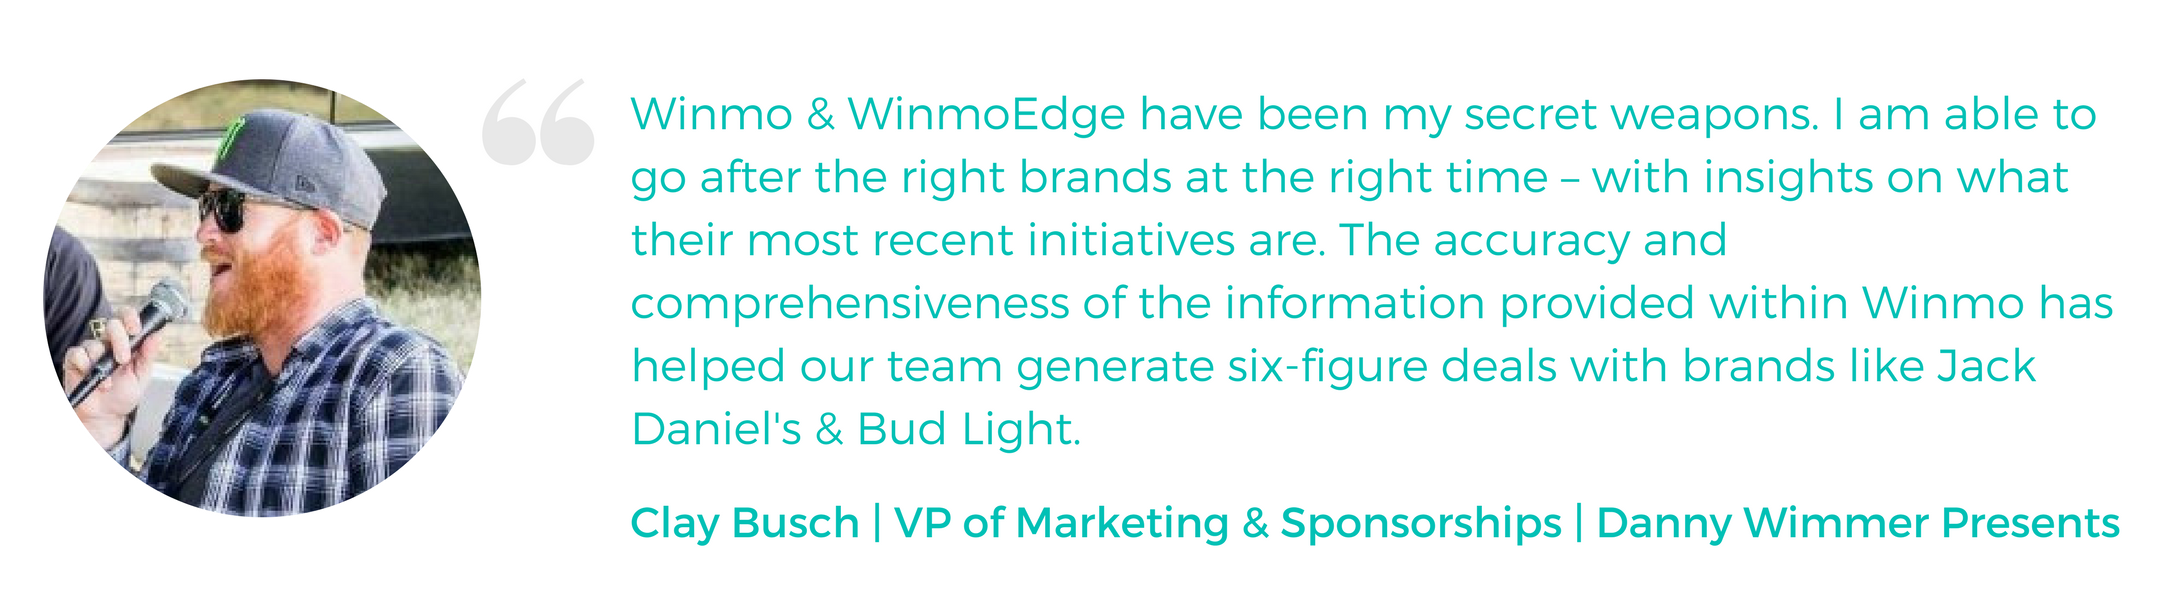 """""""Winmo & WinmoEdge have been my secret weapons. I am able to go after the right brands at the right time – with insights on what their most recent initiatives are. The accuracy and comprehensiveness of the information provided within Winmo has helped our team generate six-figure deals with brands like Jack Daniel's & Bud Light."""" -Clay Busch, VP of Marketing & Sponsorships, Danny Wimmer Presents"""